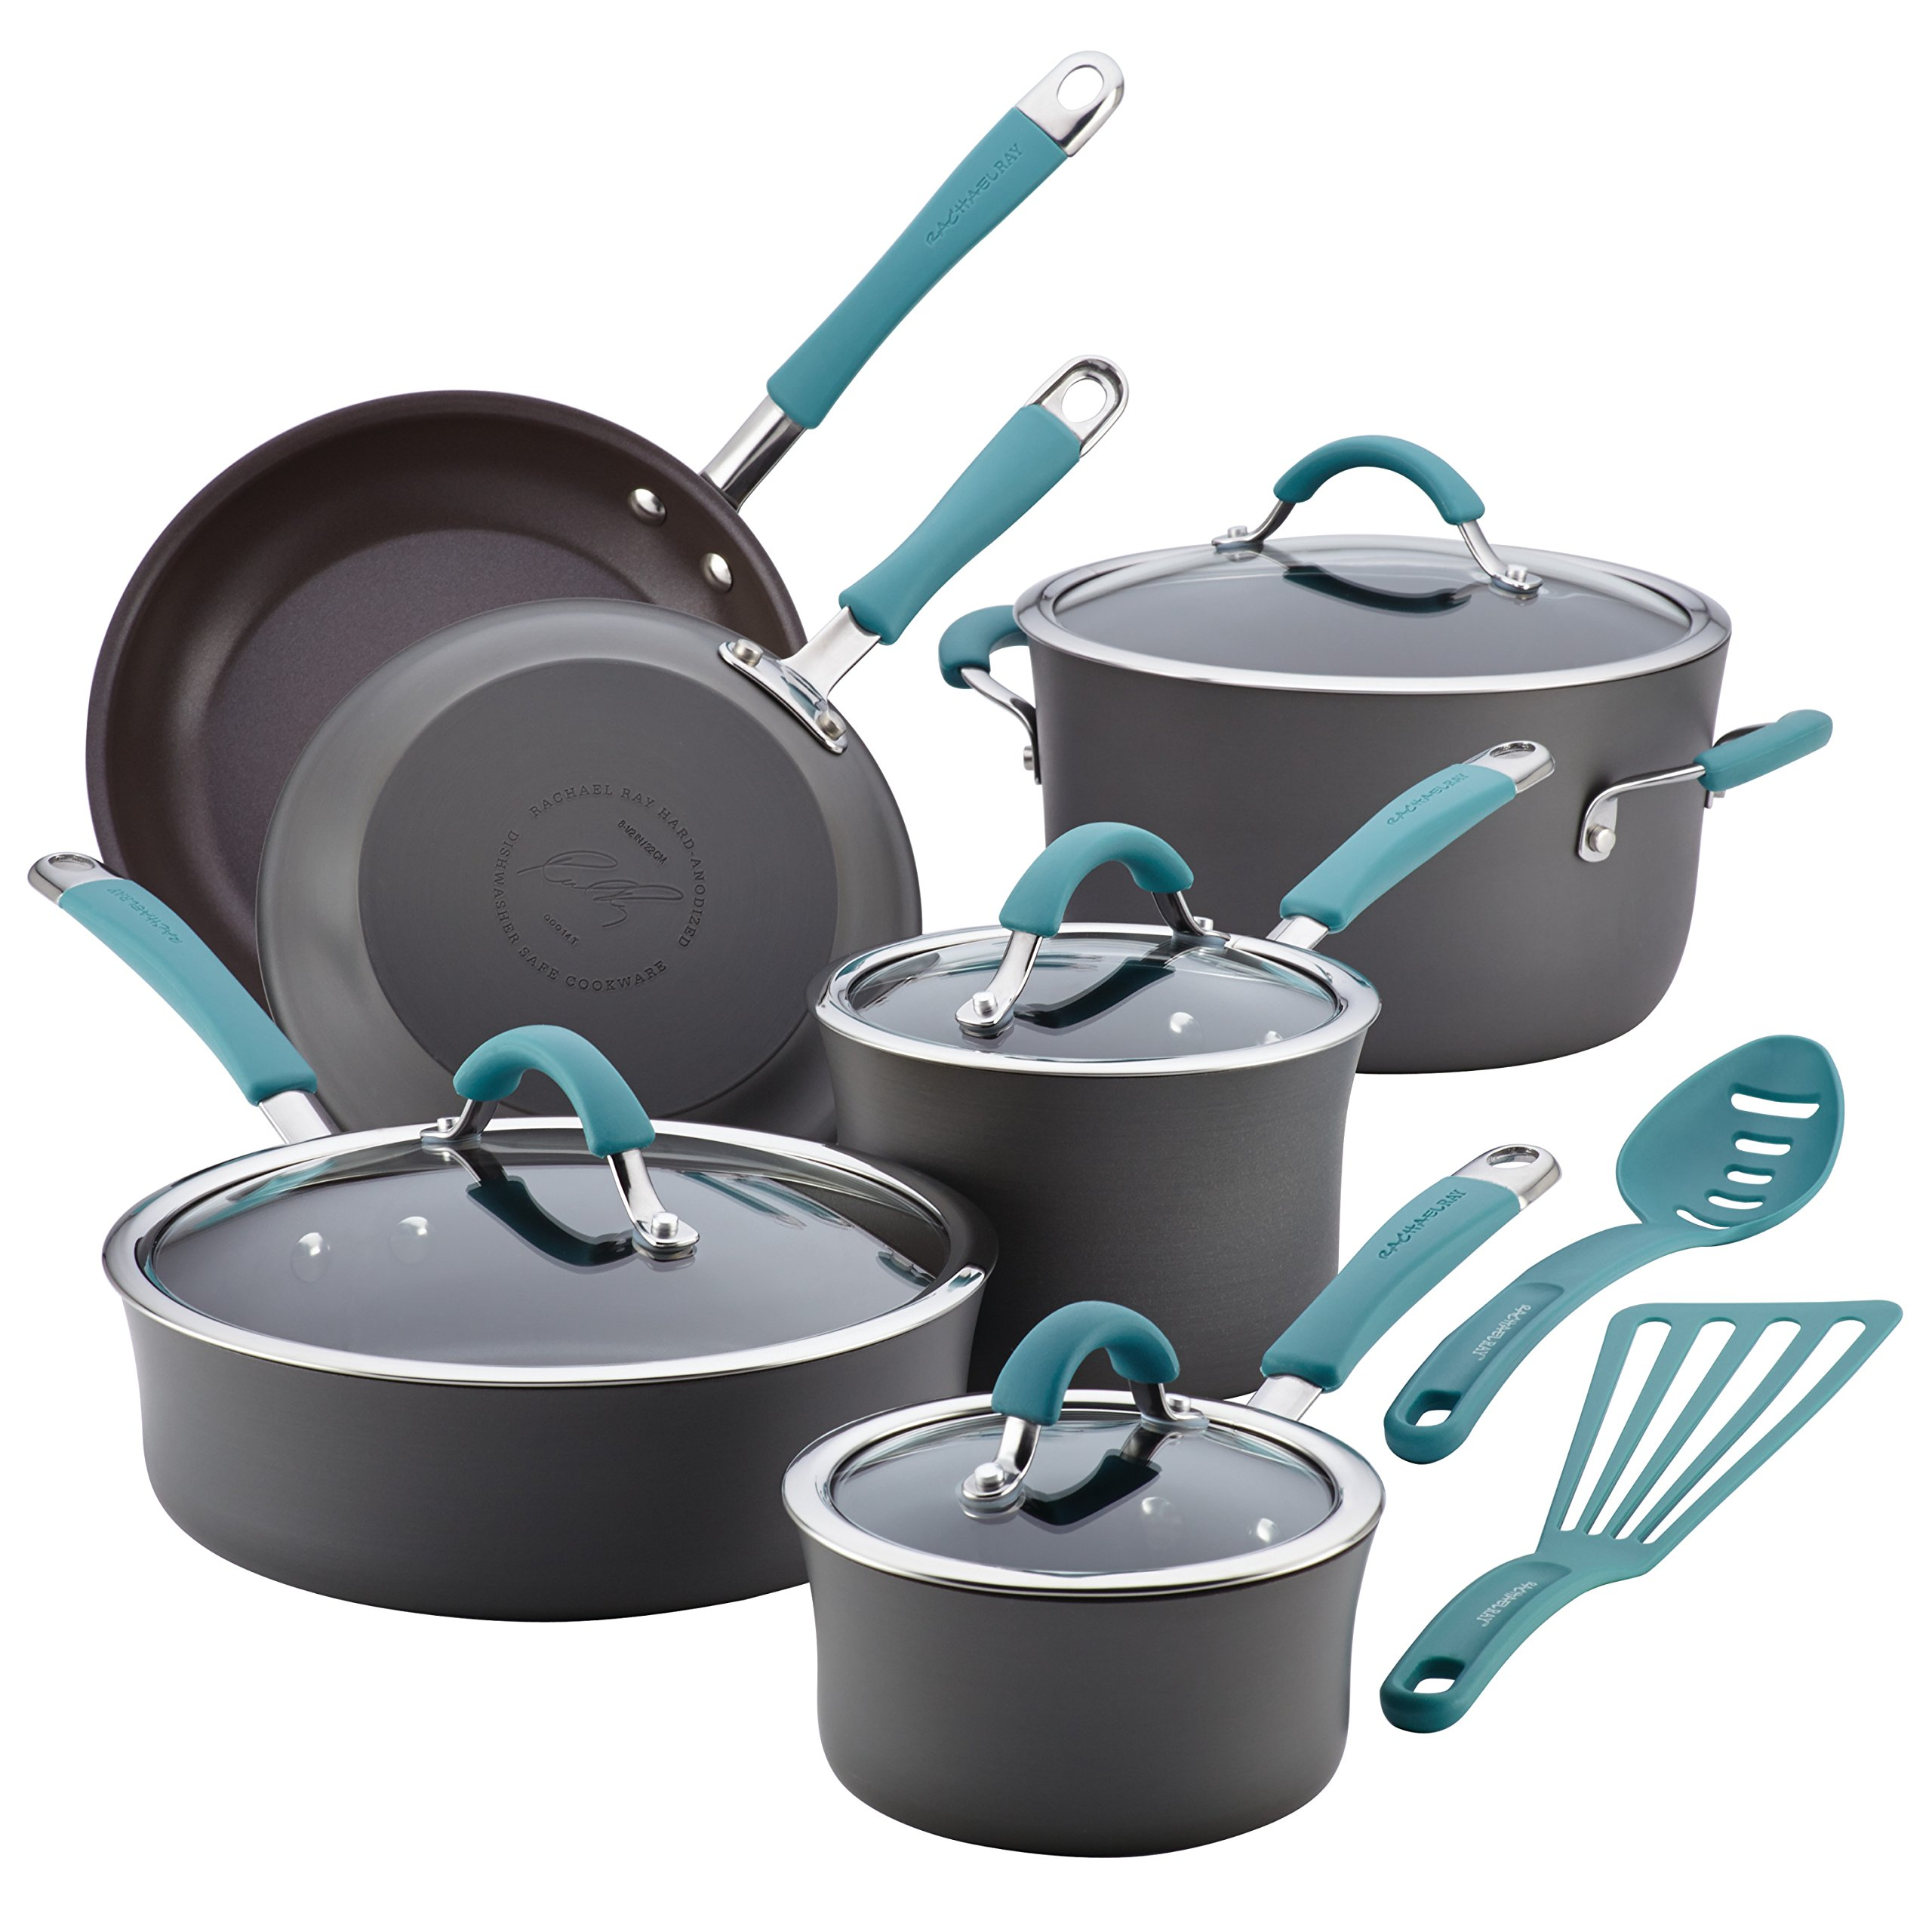 Rachael Ray Cucina 87641 12-Piece Cookware Set, Gray, Agave Blue Handles by Rachael Ray